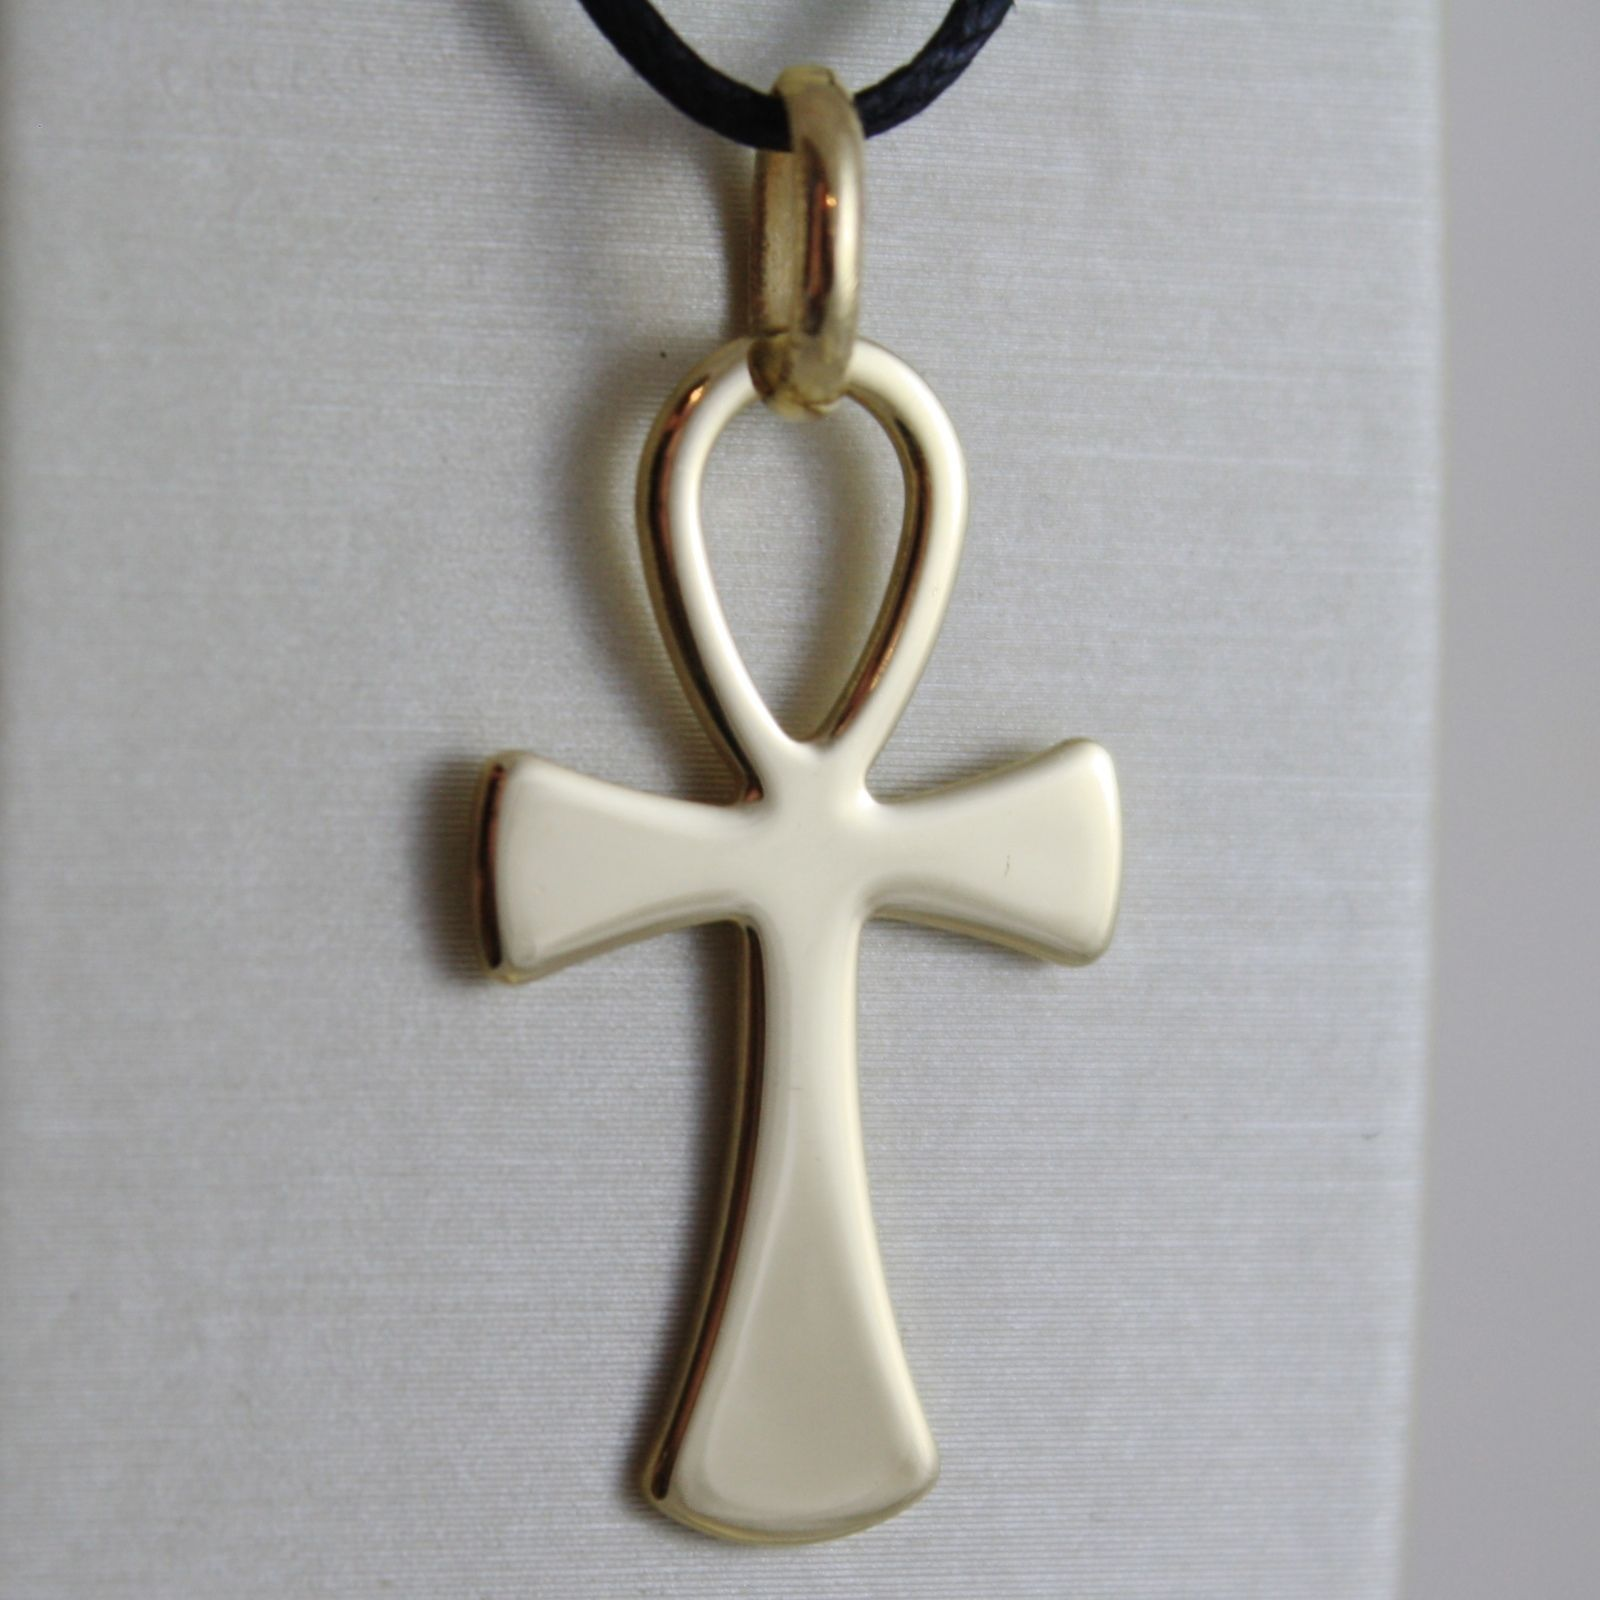 CROIX CLÉ DE VITA, ANKH, OR JAUNE 750 18K, PLATE, SOLIDE, MADE IN ITALY